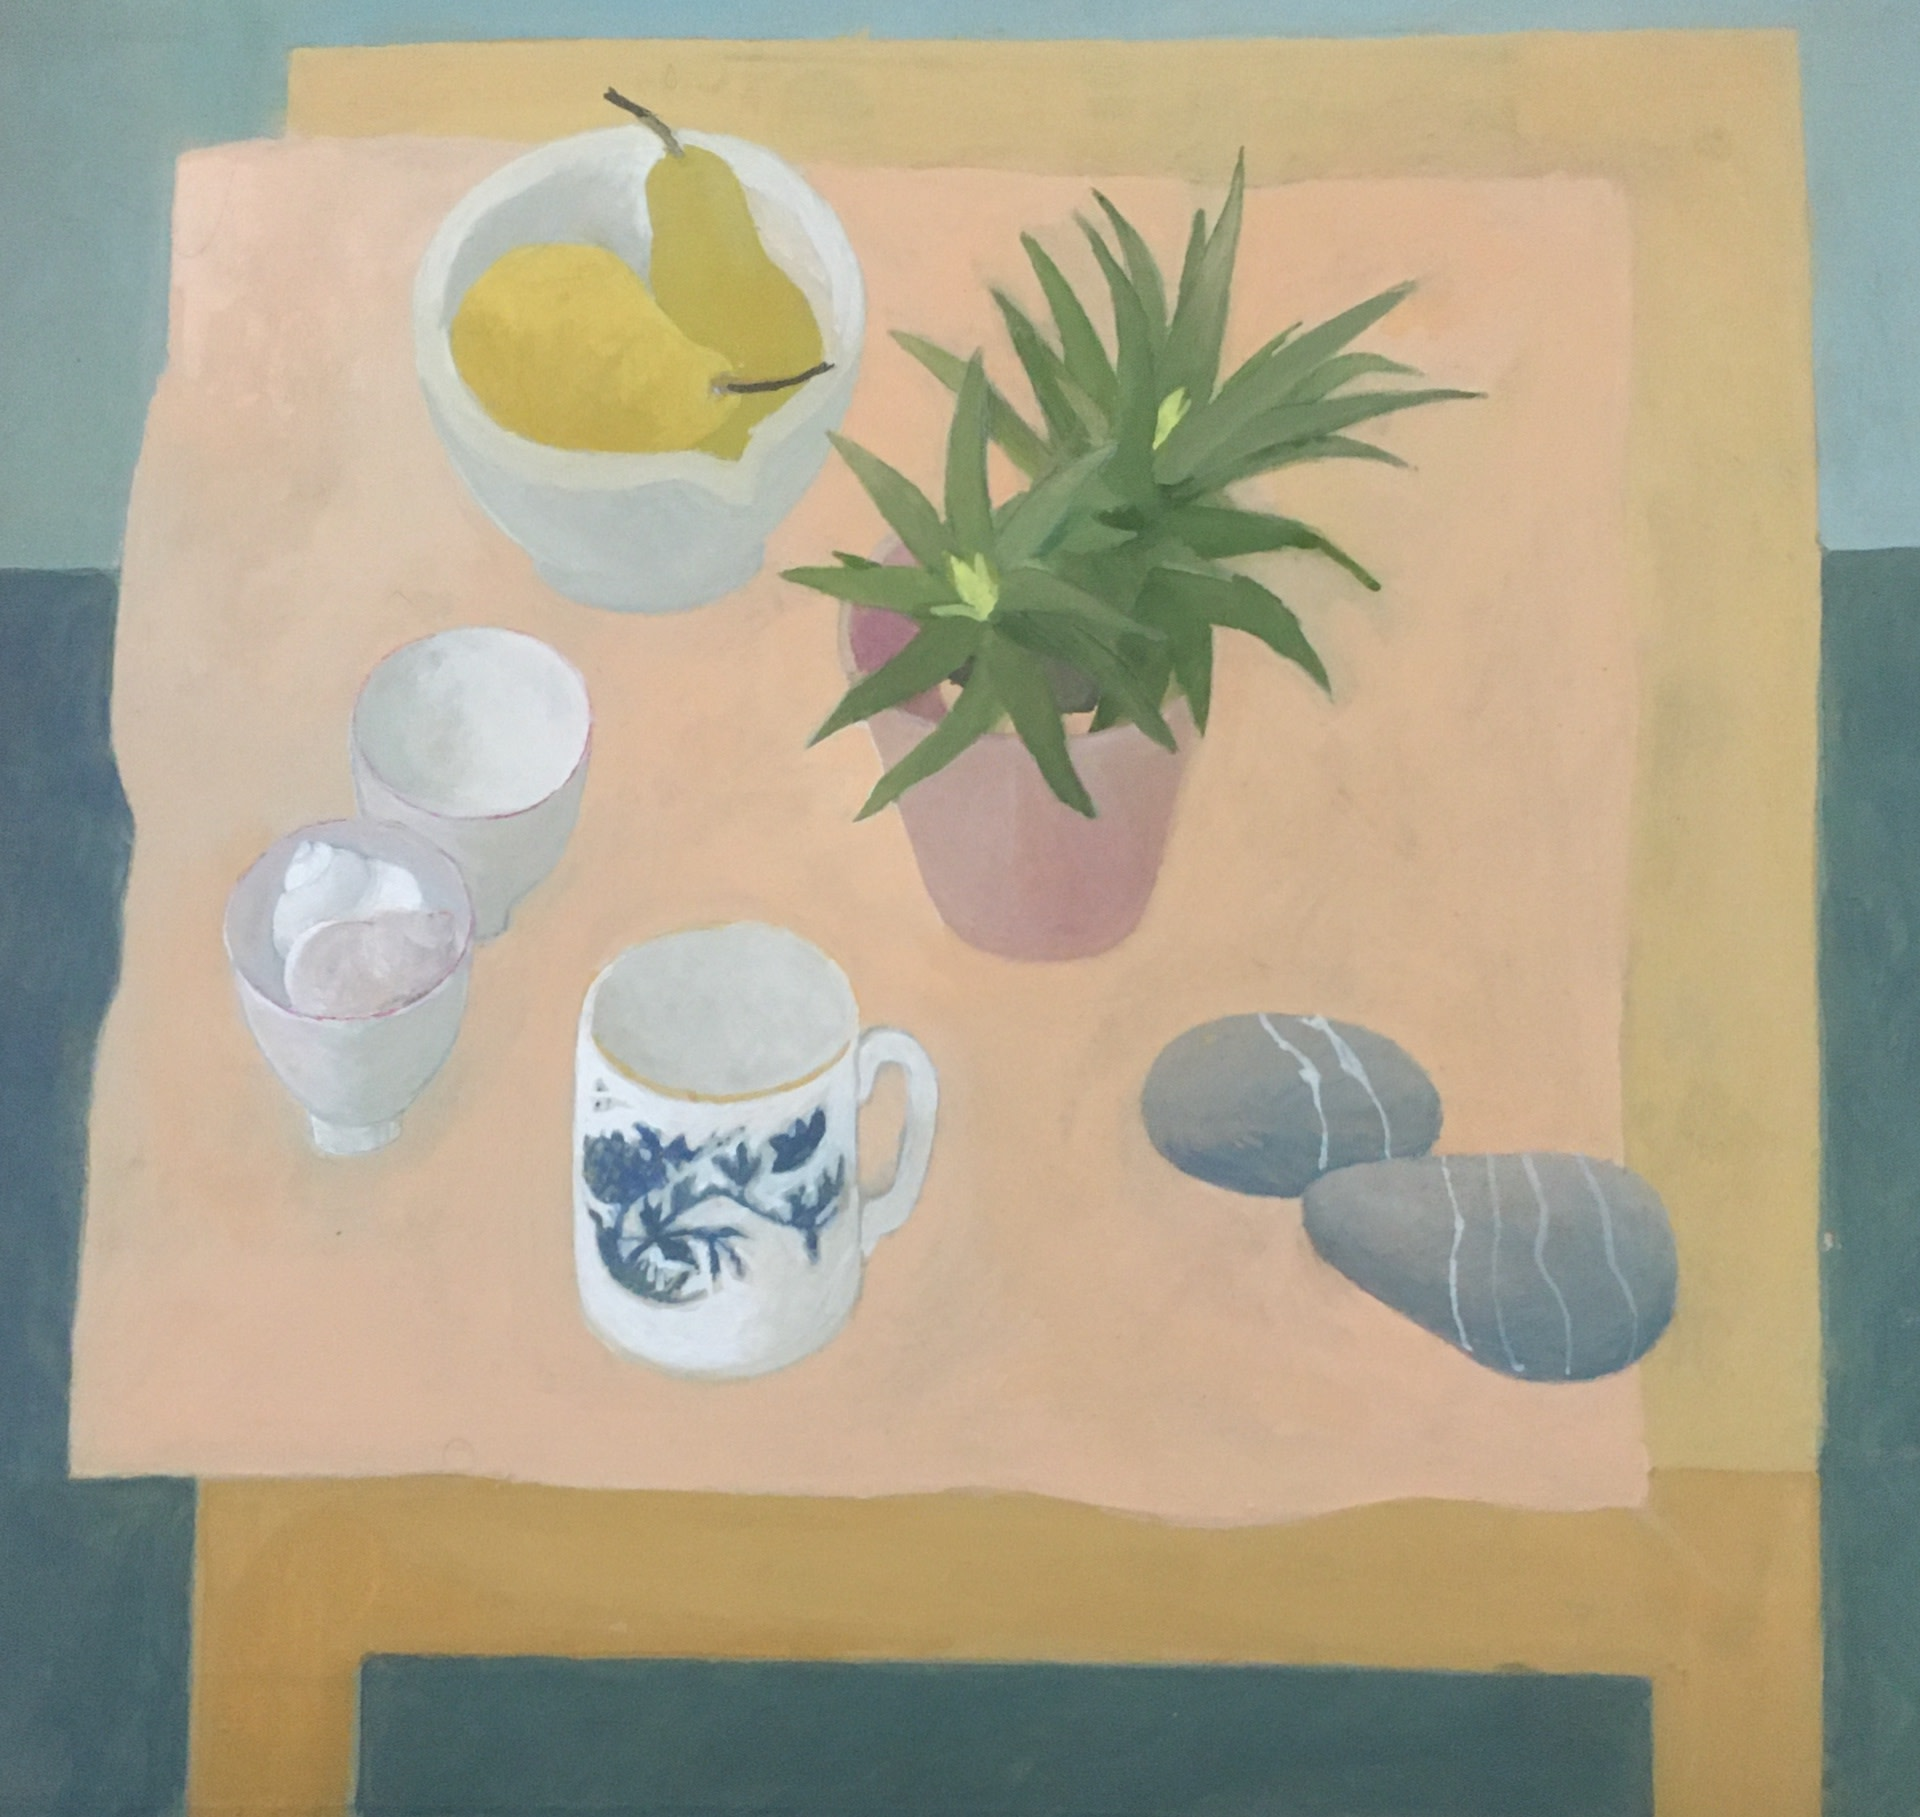 """<span class=""""link fancybox-details-link""""><a href=""""/artists/74-wendy-jacob/works/12630-wendy-jacob-yellow-table-with-peach-cloth/"""">View Detail Page</a></span><div class=""""artist""""><span class=""""artist""""><strong>Wendy Jacob</strong></span></div><div class=""""title""""><em>Yellow Table with Peach Cloth</em></div><div class=""""medium"""">gouache</div><div class=""""dimensions"""">Artwork: 31 x 29cm</div><div class=""""price"""">£550.00</div>"""